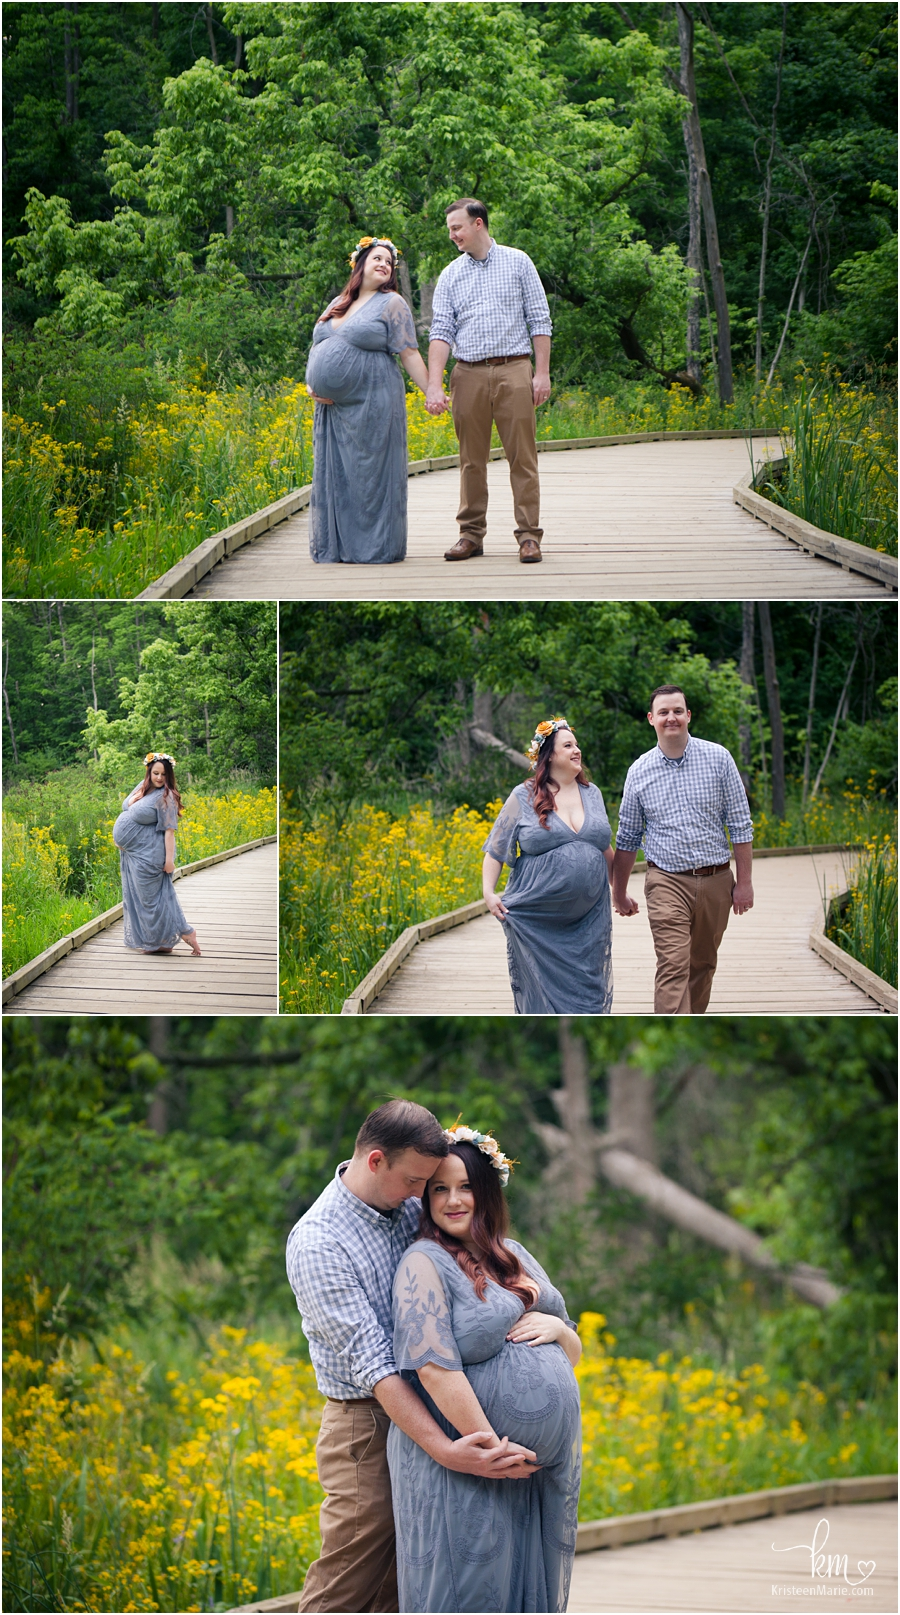 cuddle maternity photography